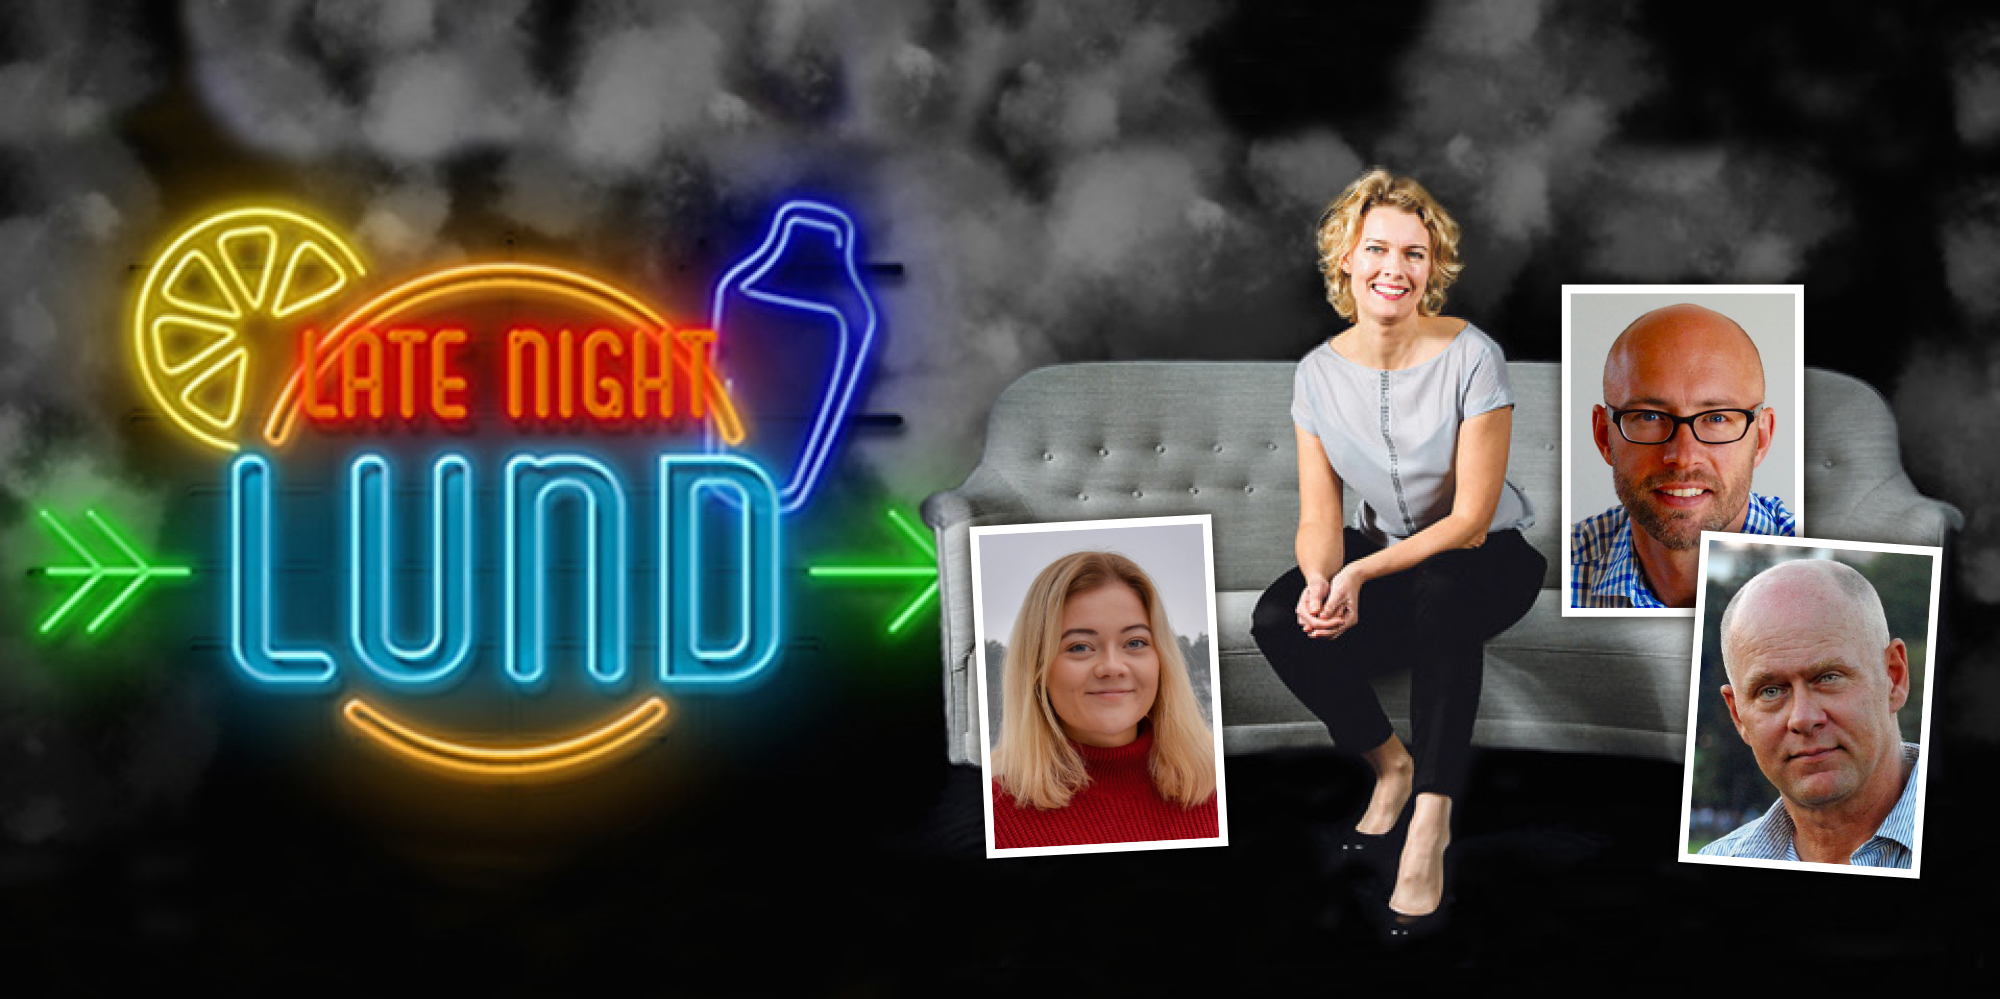 Folke Rydén till Late Night Lund